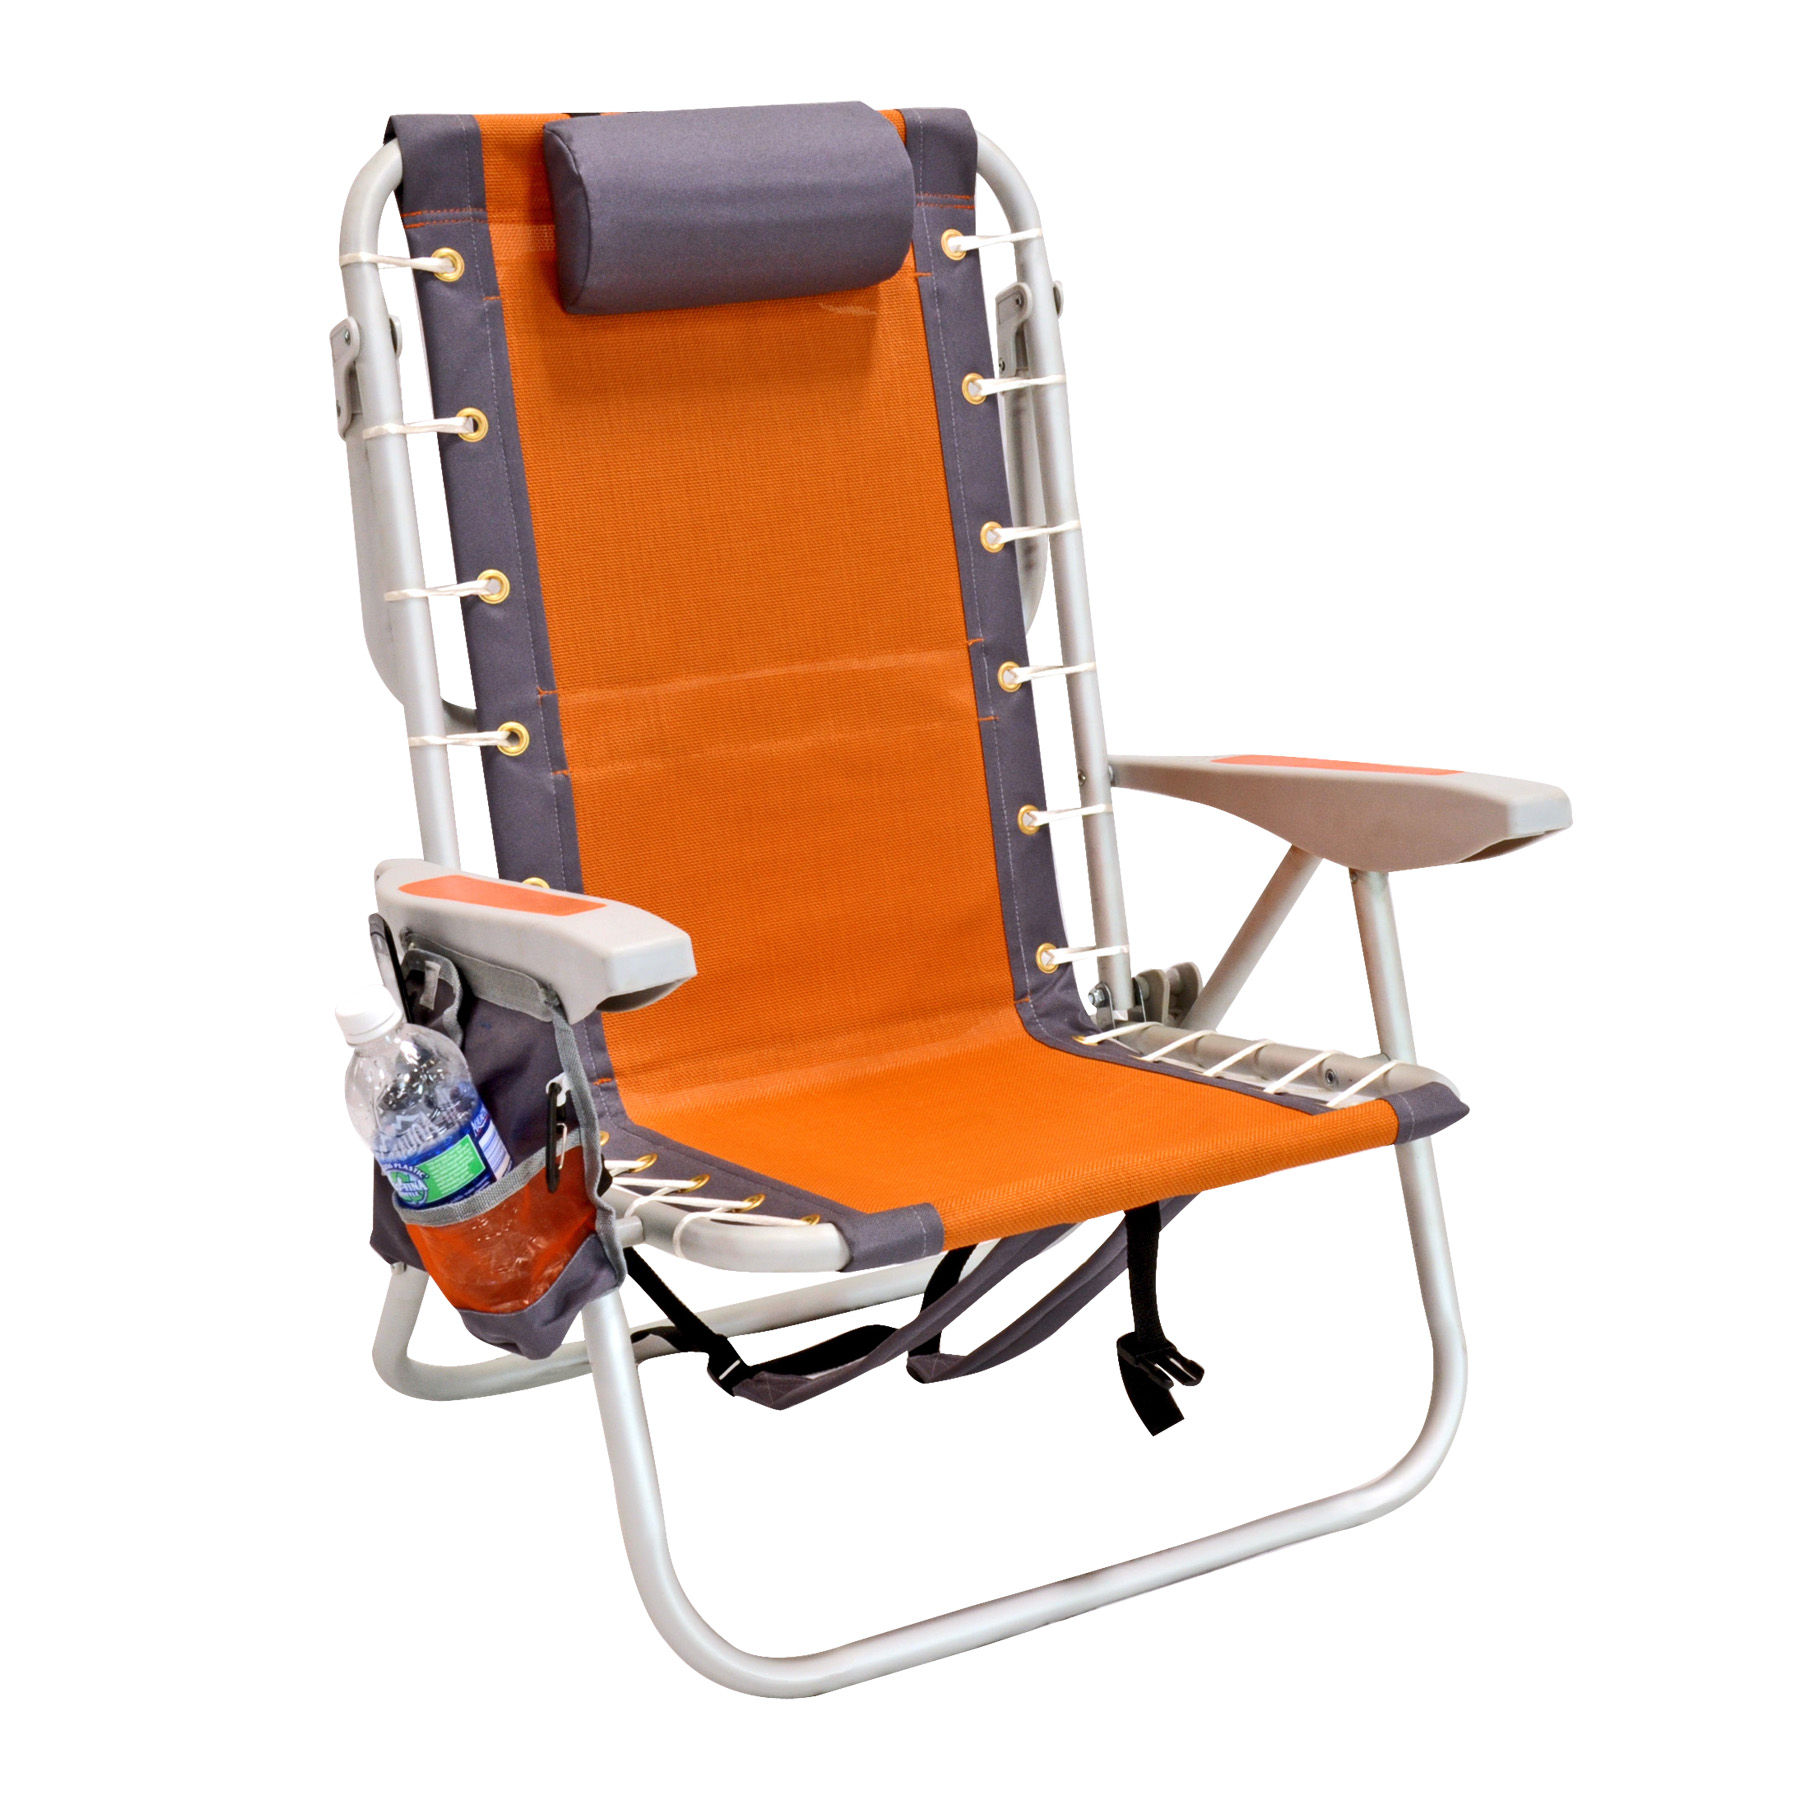 Rio 5 POS Layflat Ultimate Backpack Beach Chair W Cooler WRB5360